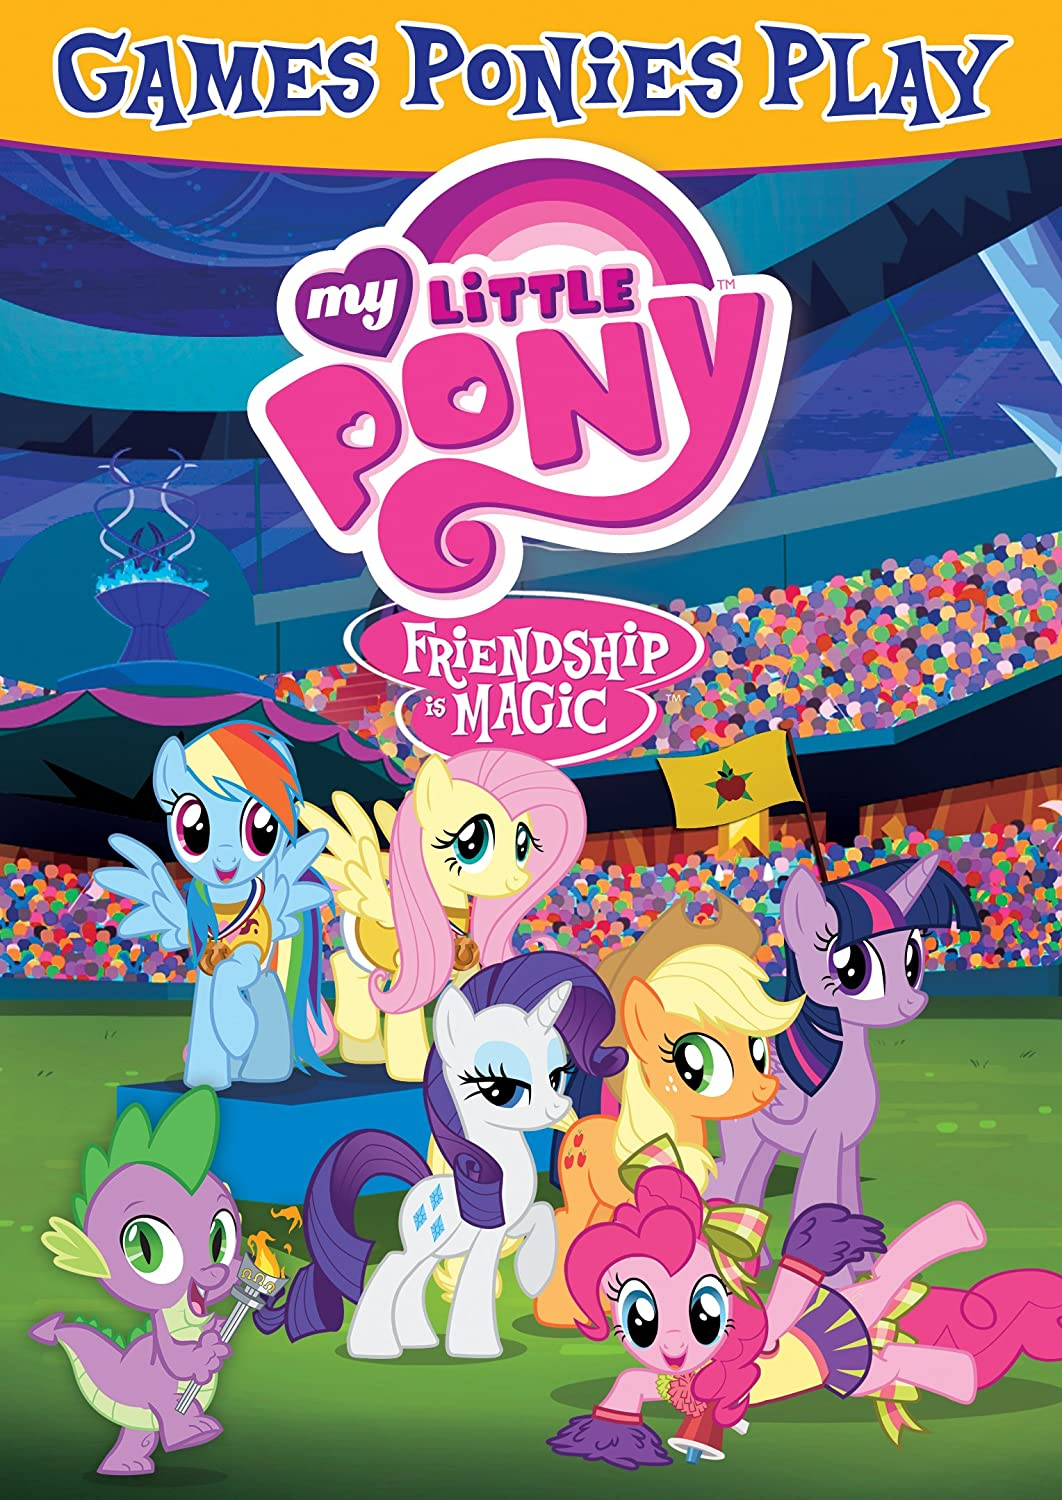 - Amazon.com: My Little Pony Friendship Is Magic: Games Ponies Play